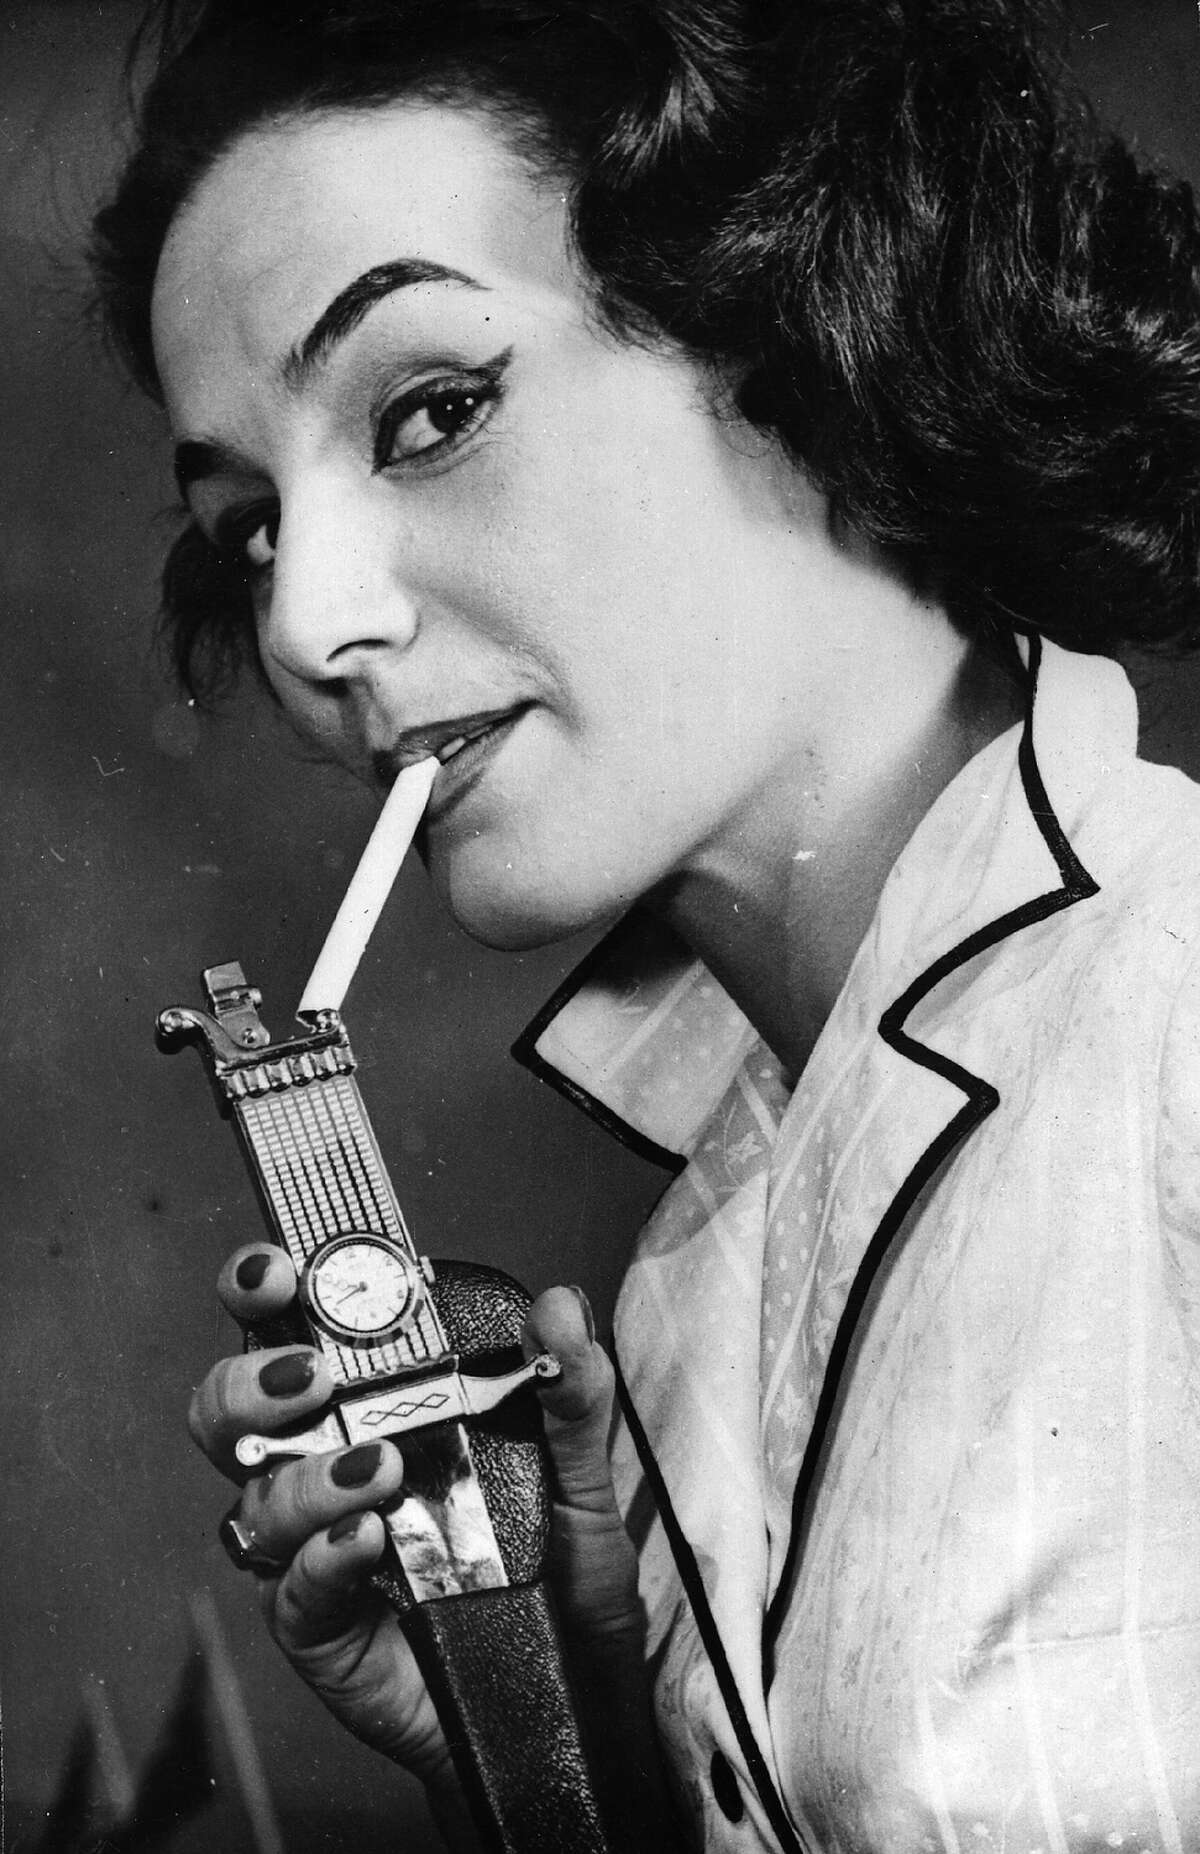 Dagger lighter, 1957 Whenever I stab someone, I need a cig to calm my nerves too, but some things are better left uninvented.